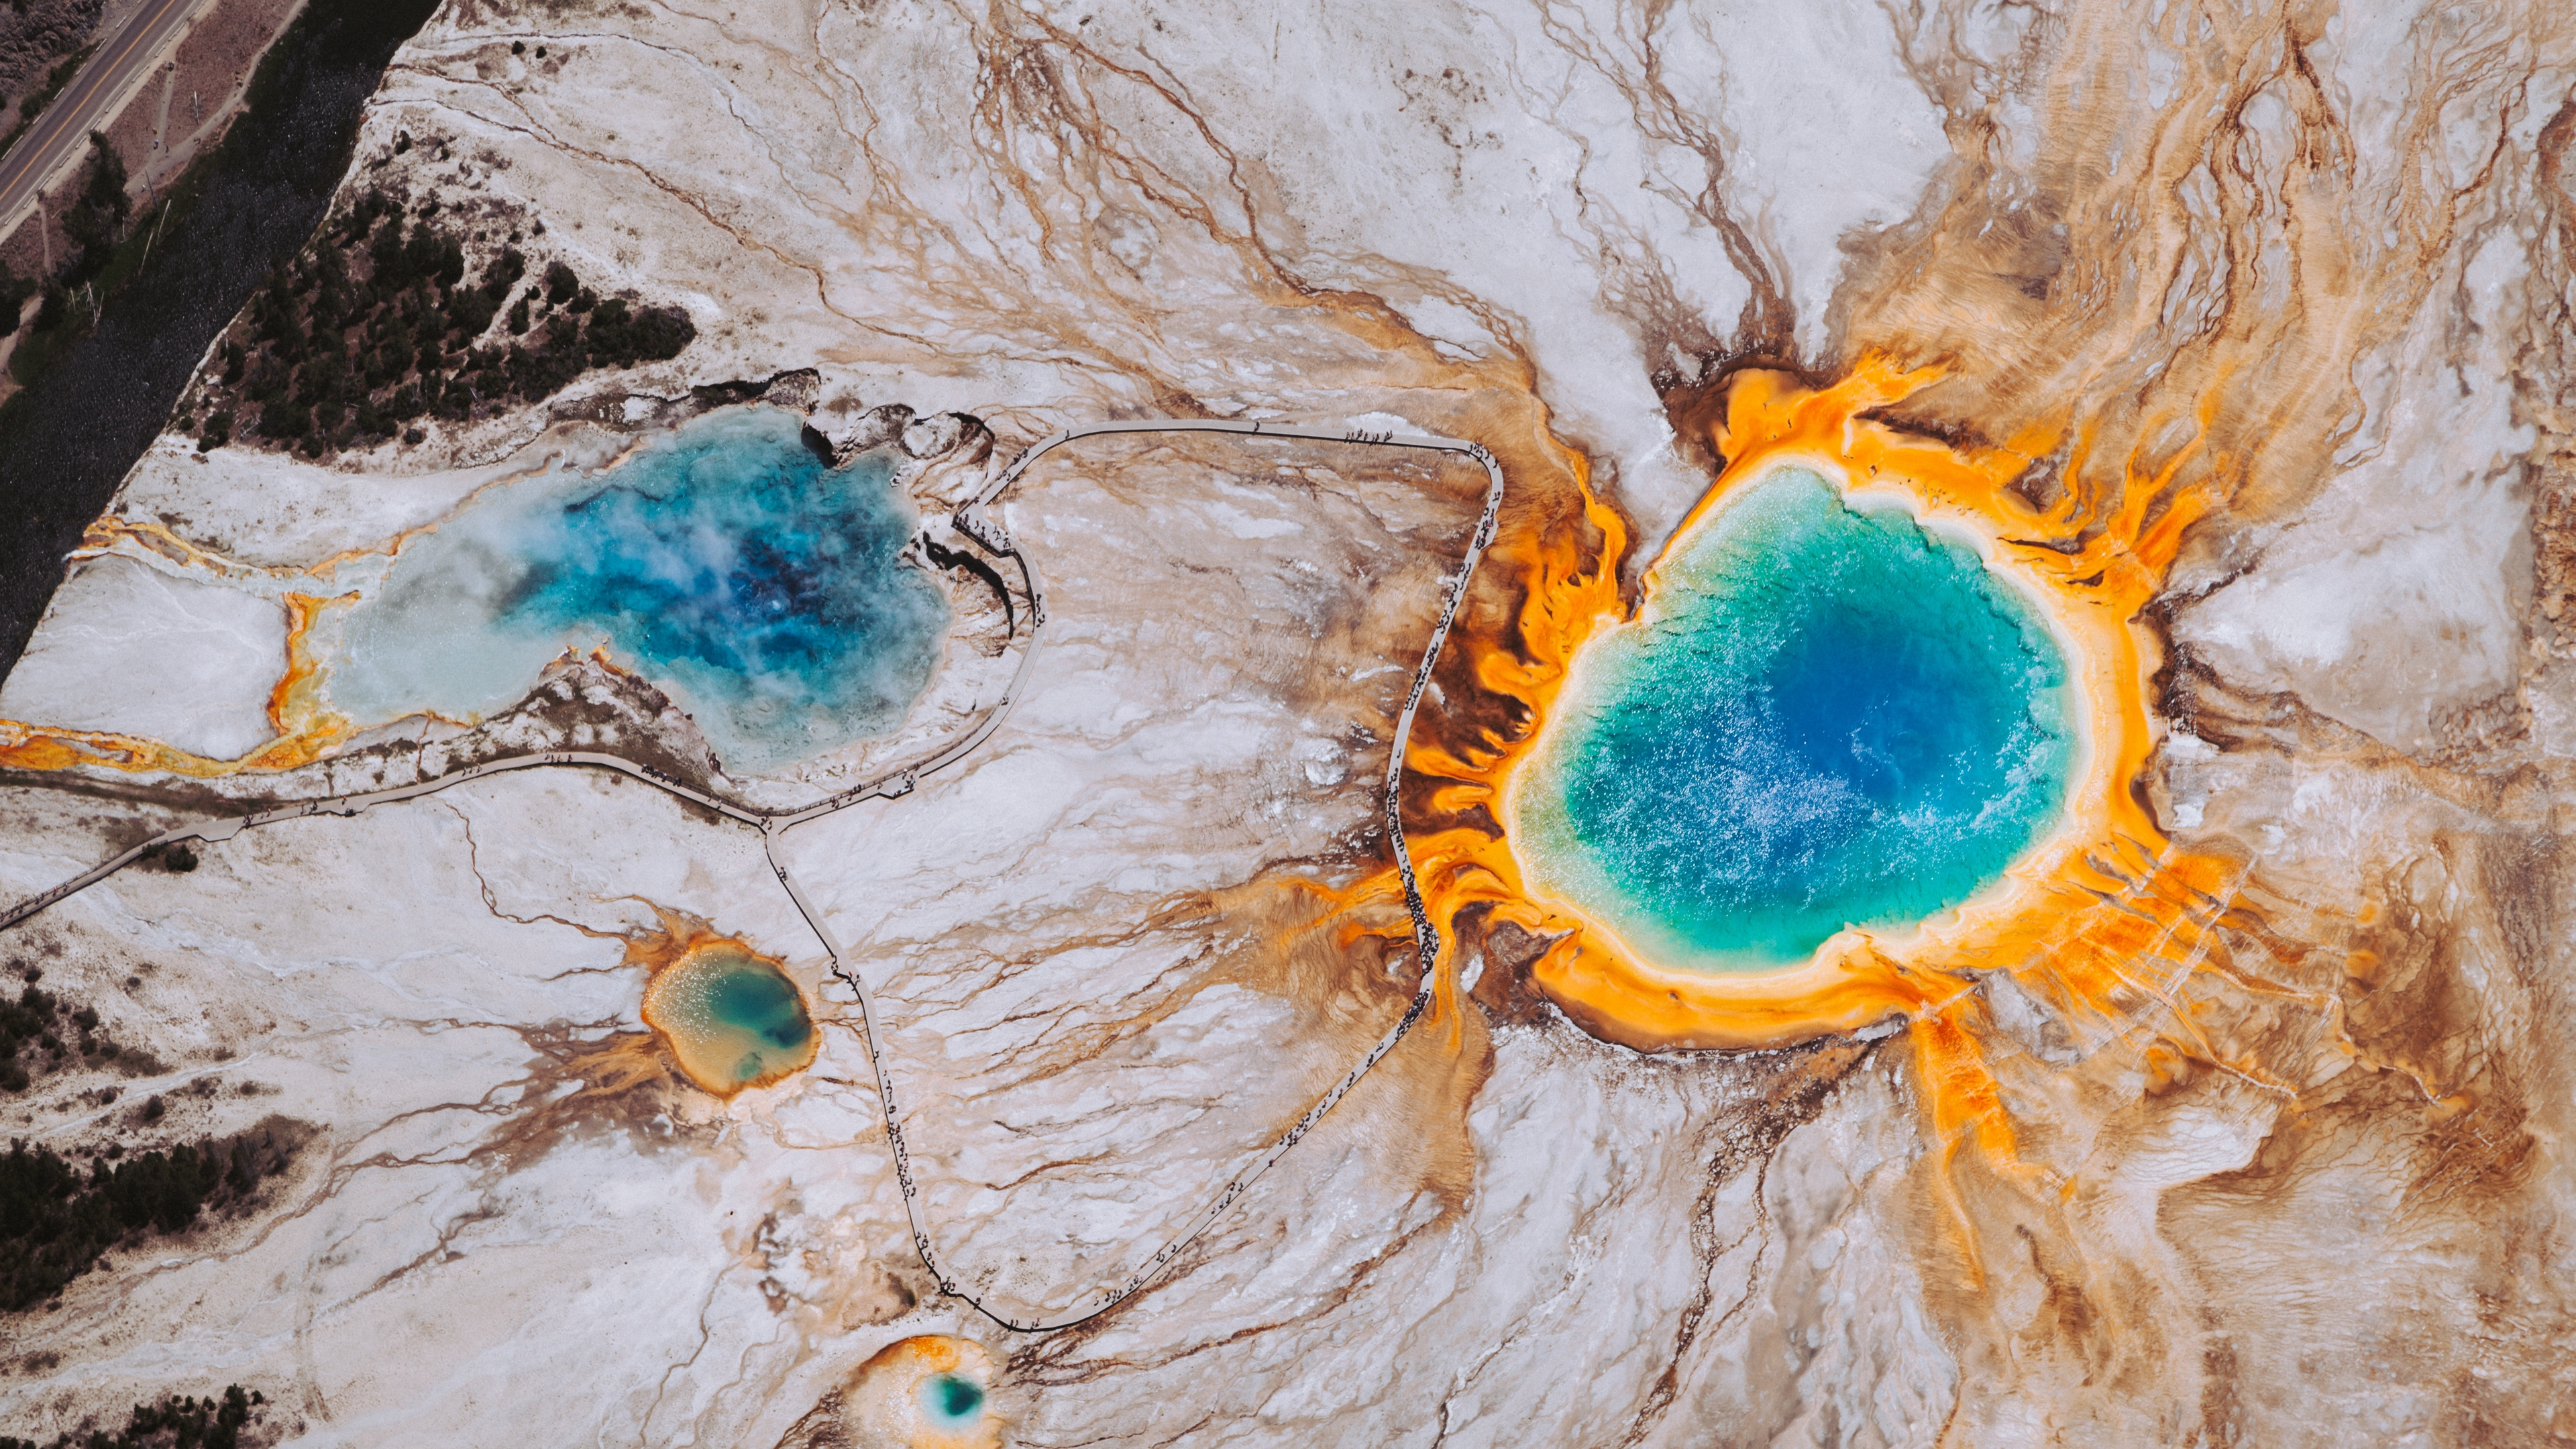 grand prismatic spring surface scenic wyoming united states 4k 1541115453 - grand prismatic spring, surface, scenic, wyoming, united states 4k - Surface, Scenic, grand prismatic spring